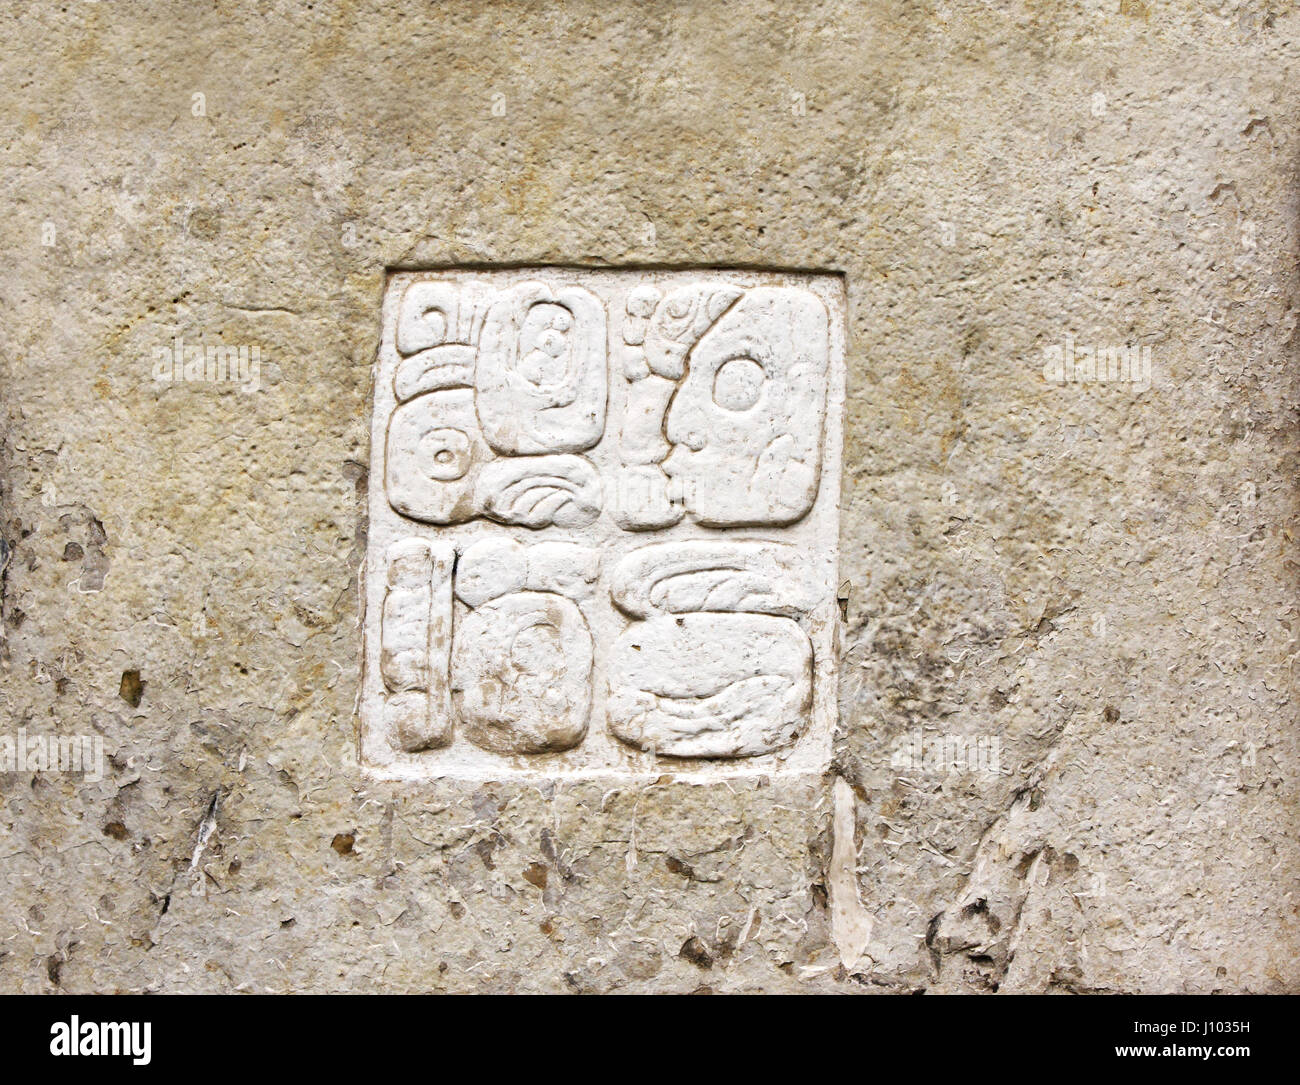 Bas-relief carving with Mayan inscription, pre-Columbian Maya civilization, Palenque, Chiapas, Mexico. UNESCO world - Stock Image